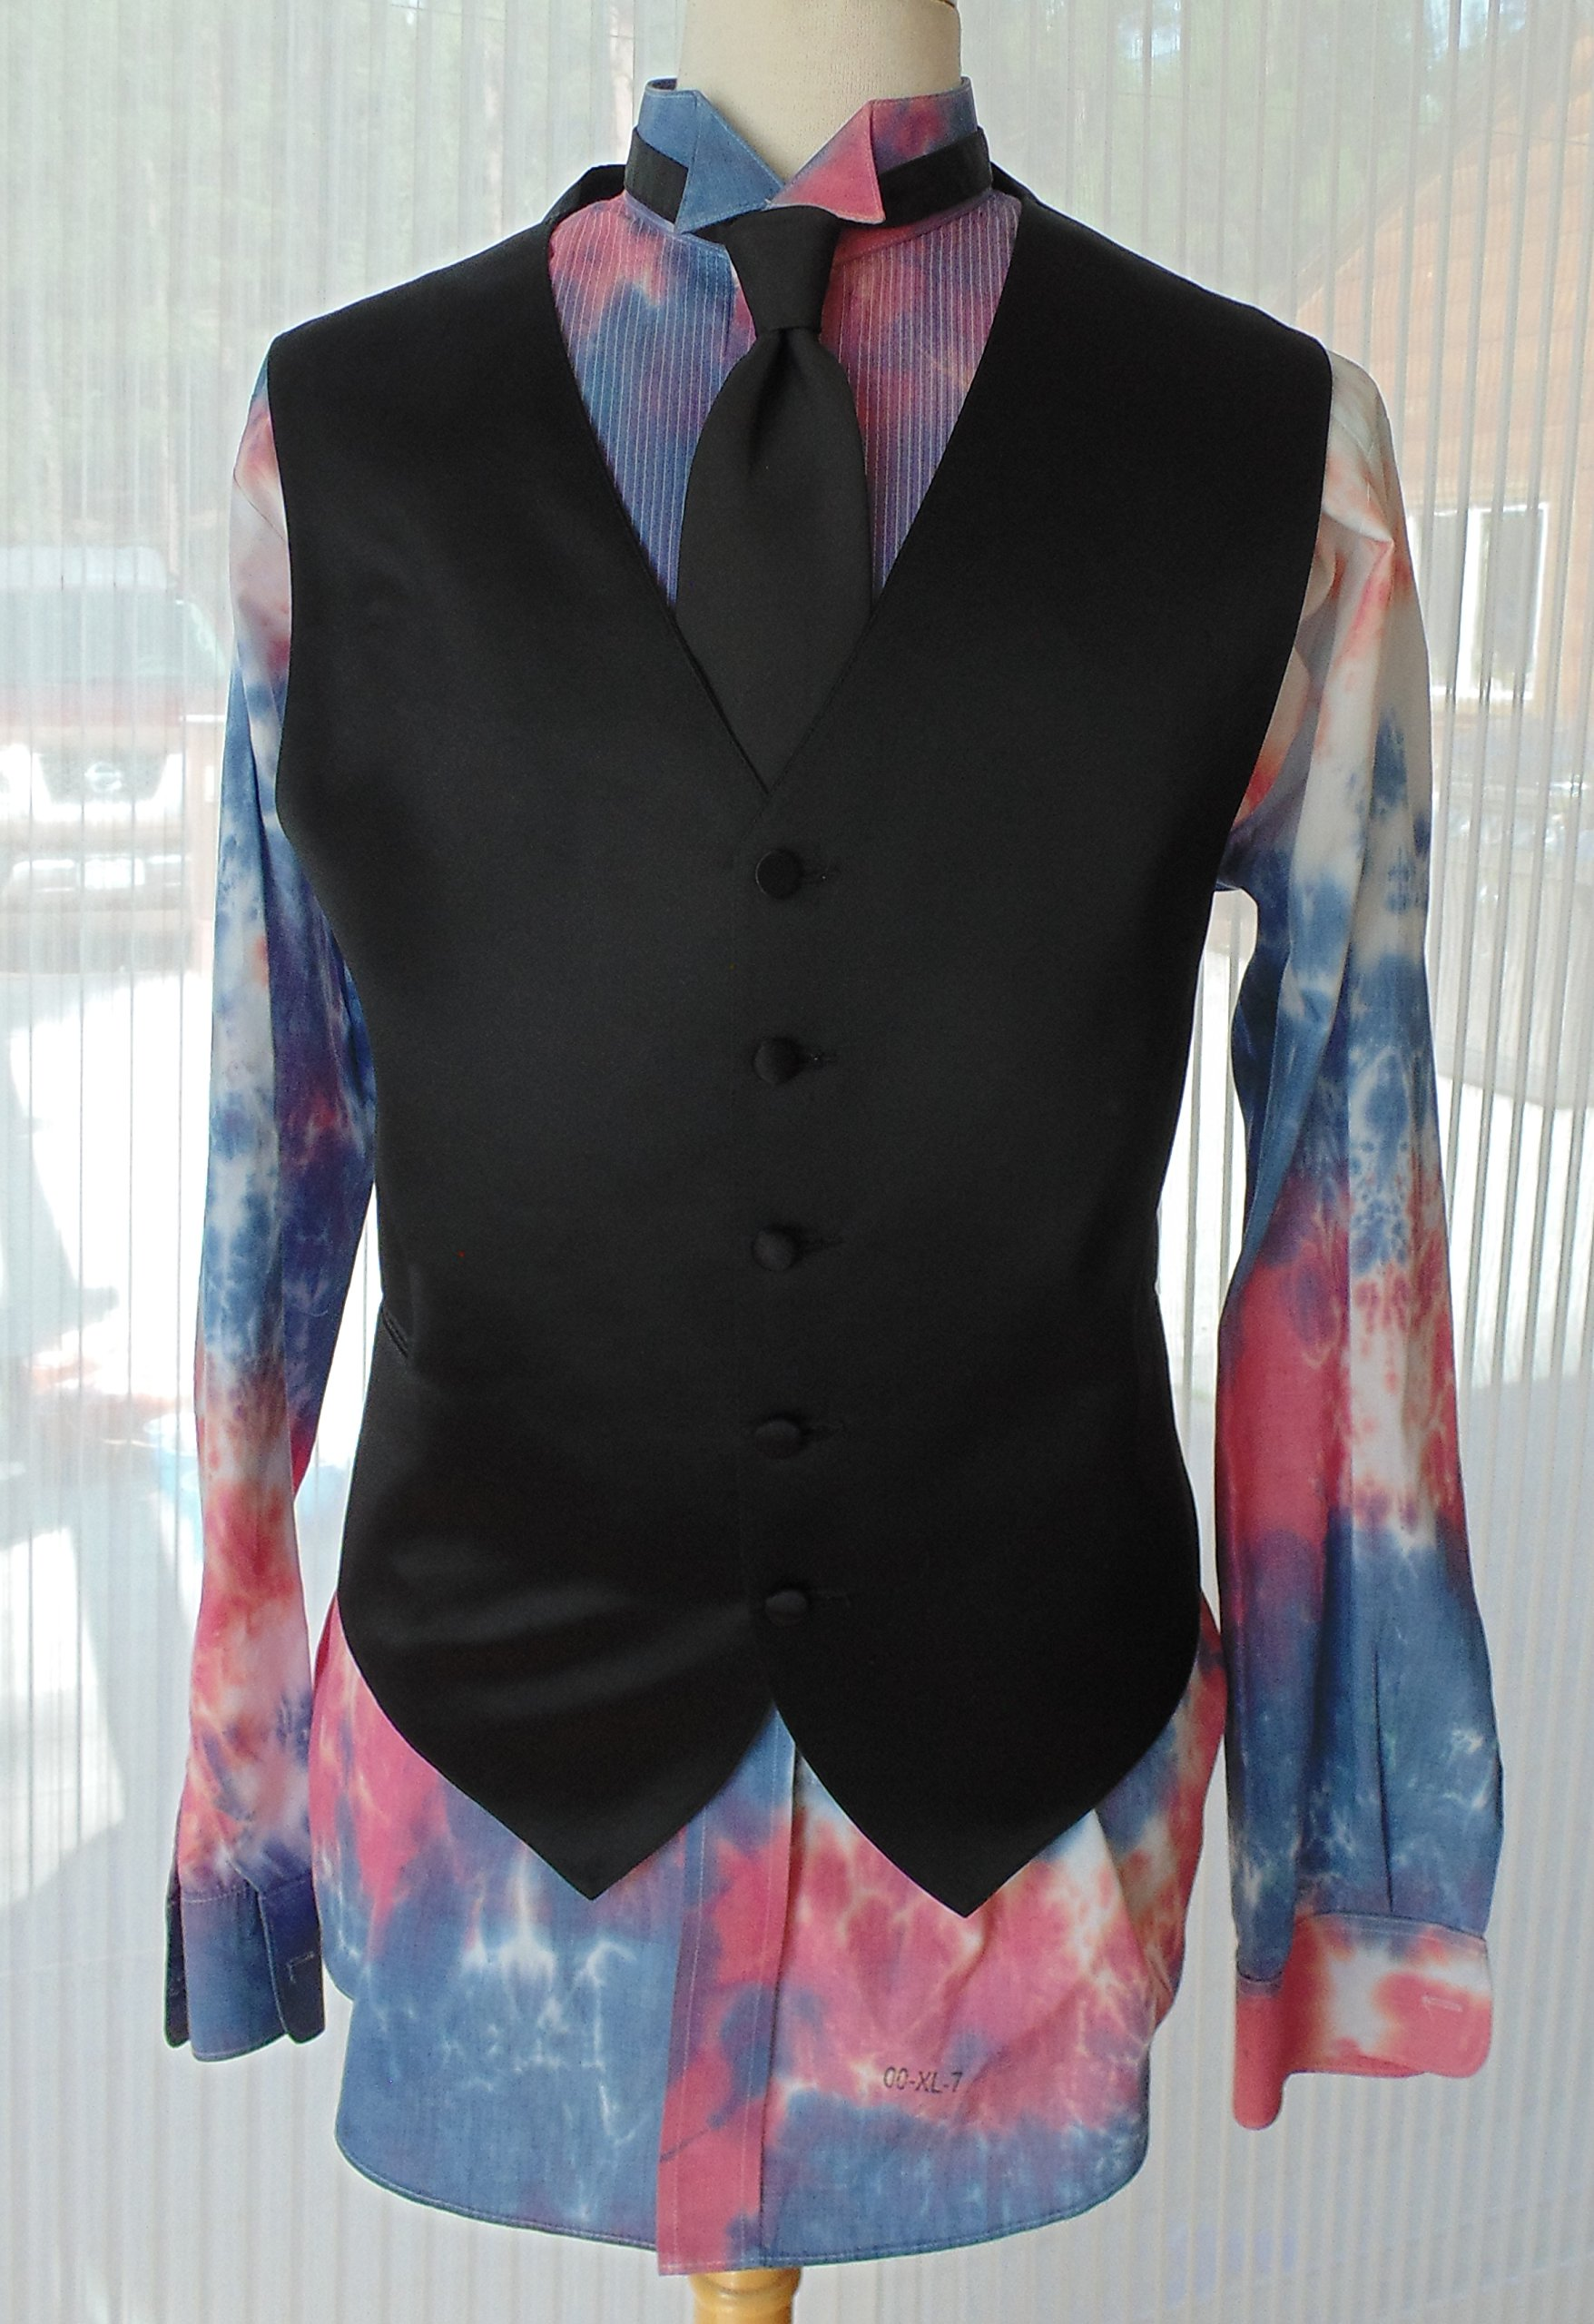 Men's XL 36-37 Hand Tie Dye Tuxedo Shirt in Shades of Red, White, and Blue groom